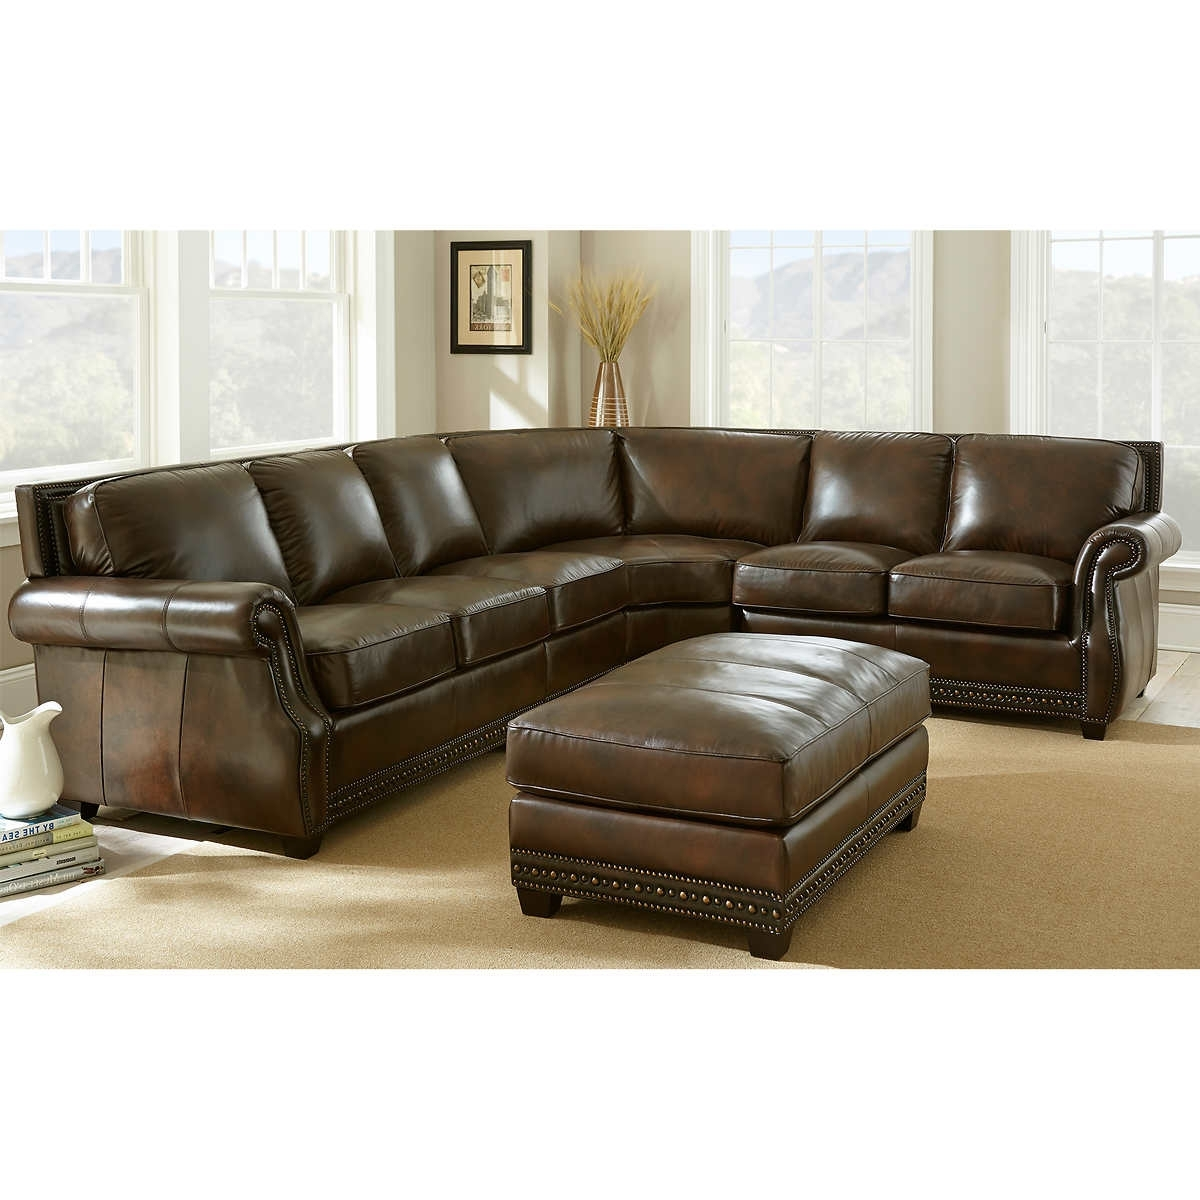 High End Leather Sectional Sofas Within Most Popular Sectional Leather Couches Natuzzi Leather Sectional Leather (View 11 of 20)